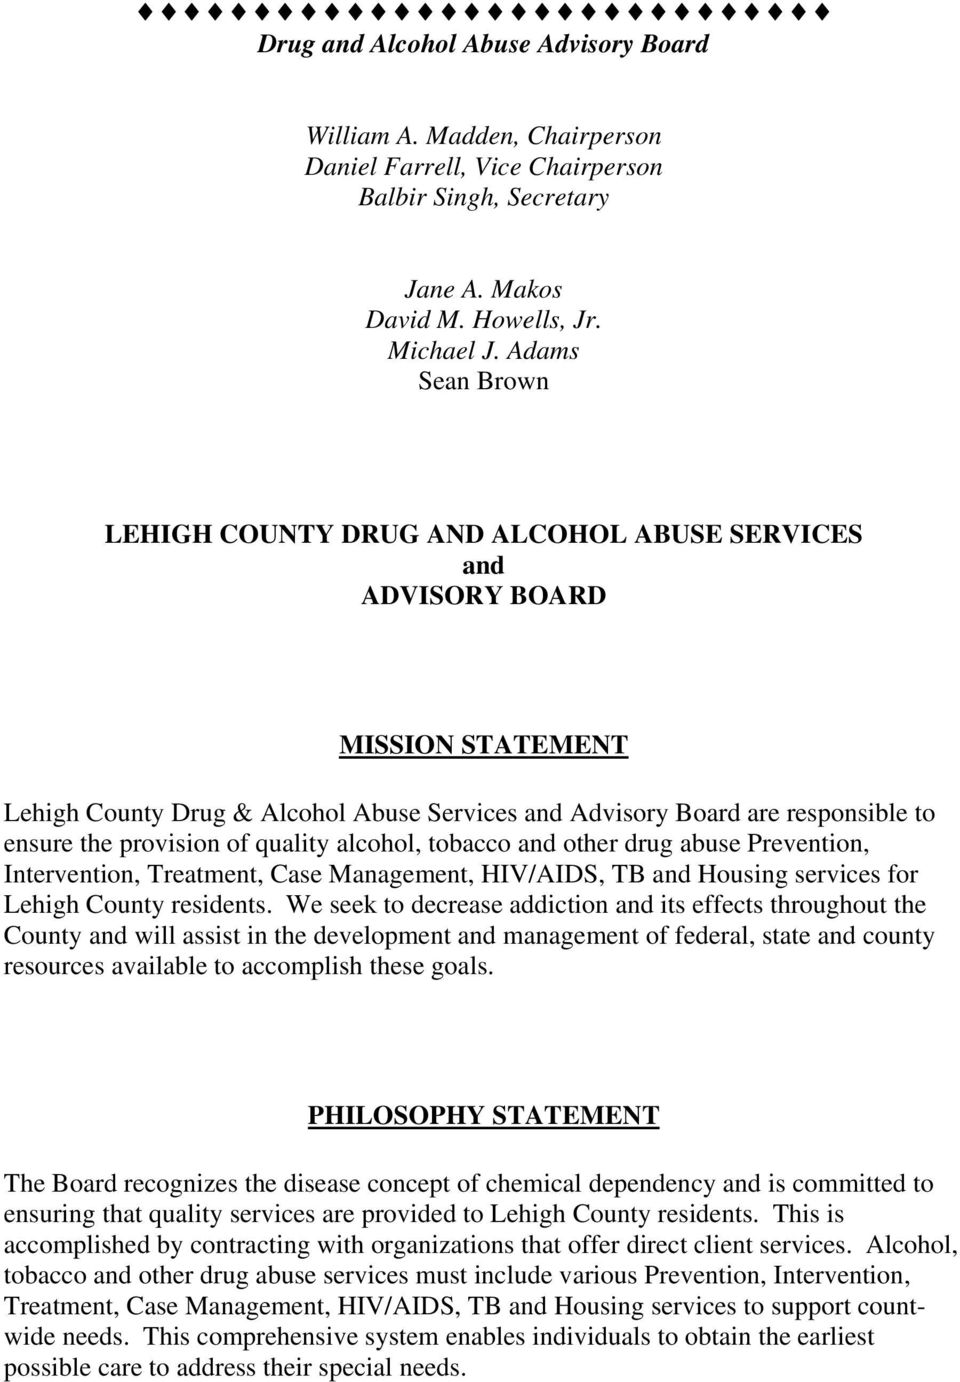 provision of quality alcohol, tobacco and other drug abuse Prevention, Intervention, Treatment, Case Management, HIV/AIDS, TB and Housing services for Lehigh County residents.